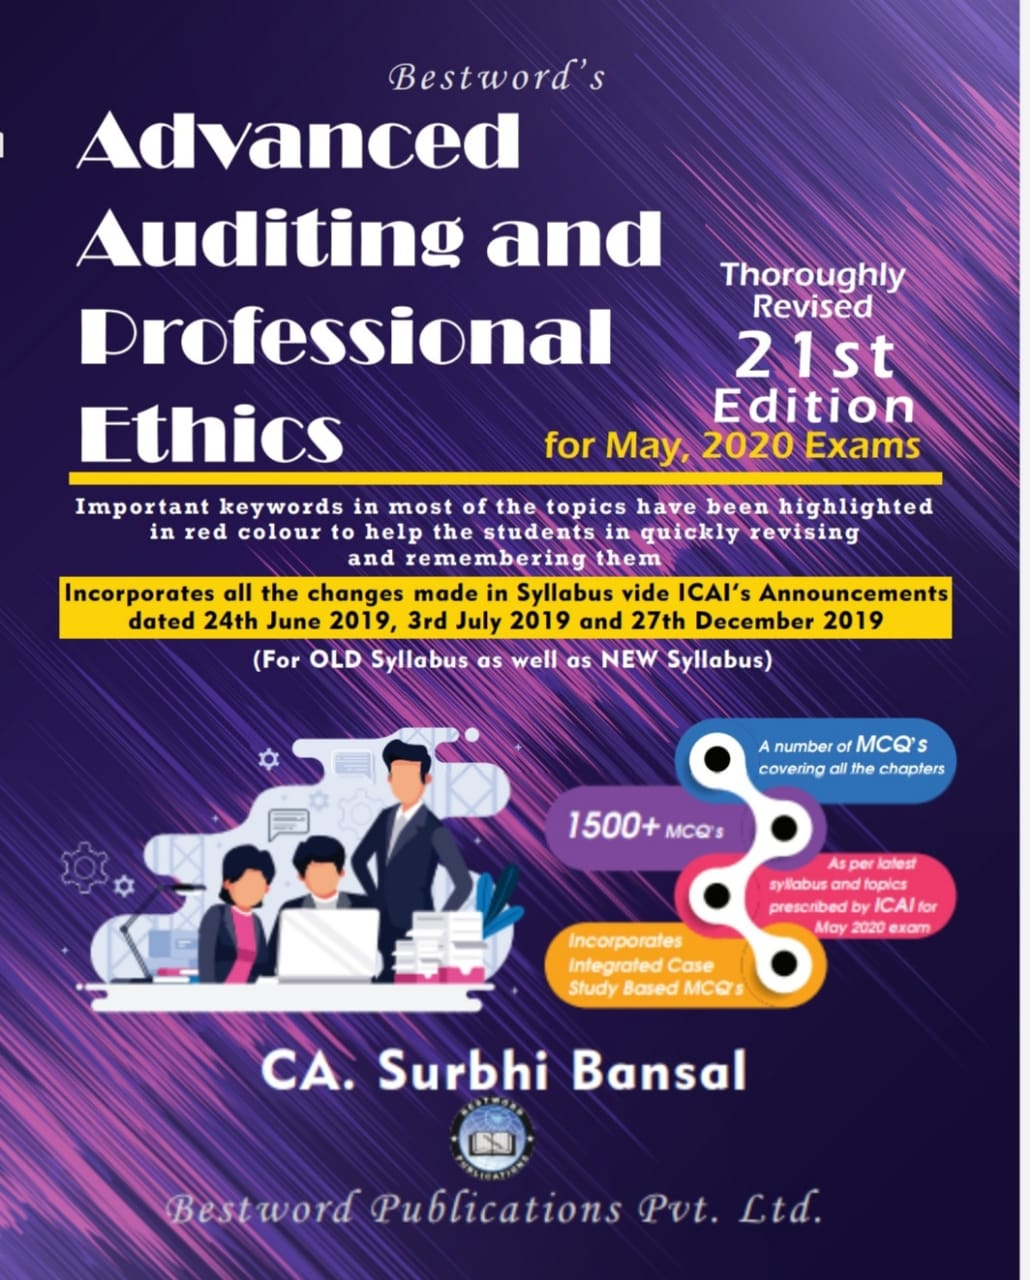 Bestword CA Final Advanced Auditing & Professional Ethics Old Syllabus and New Syllabus both By Surbhi Bansal Applicable for May 2019 Exam (Bestword's Publishing)  May 2020